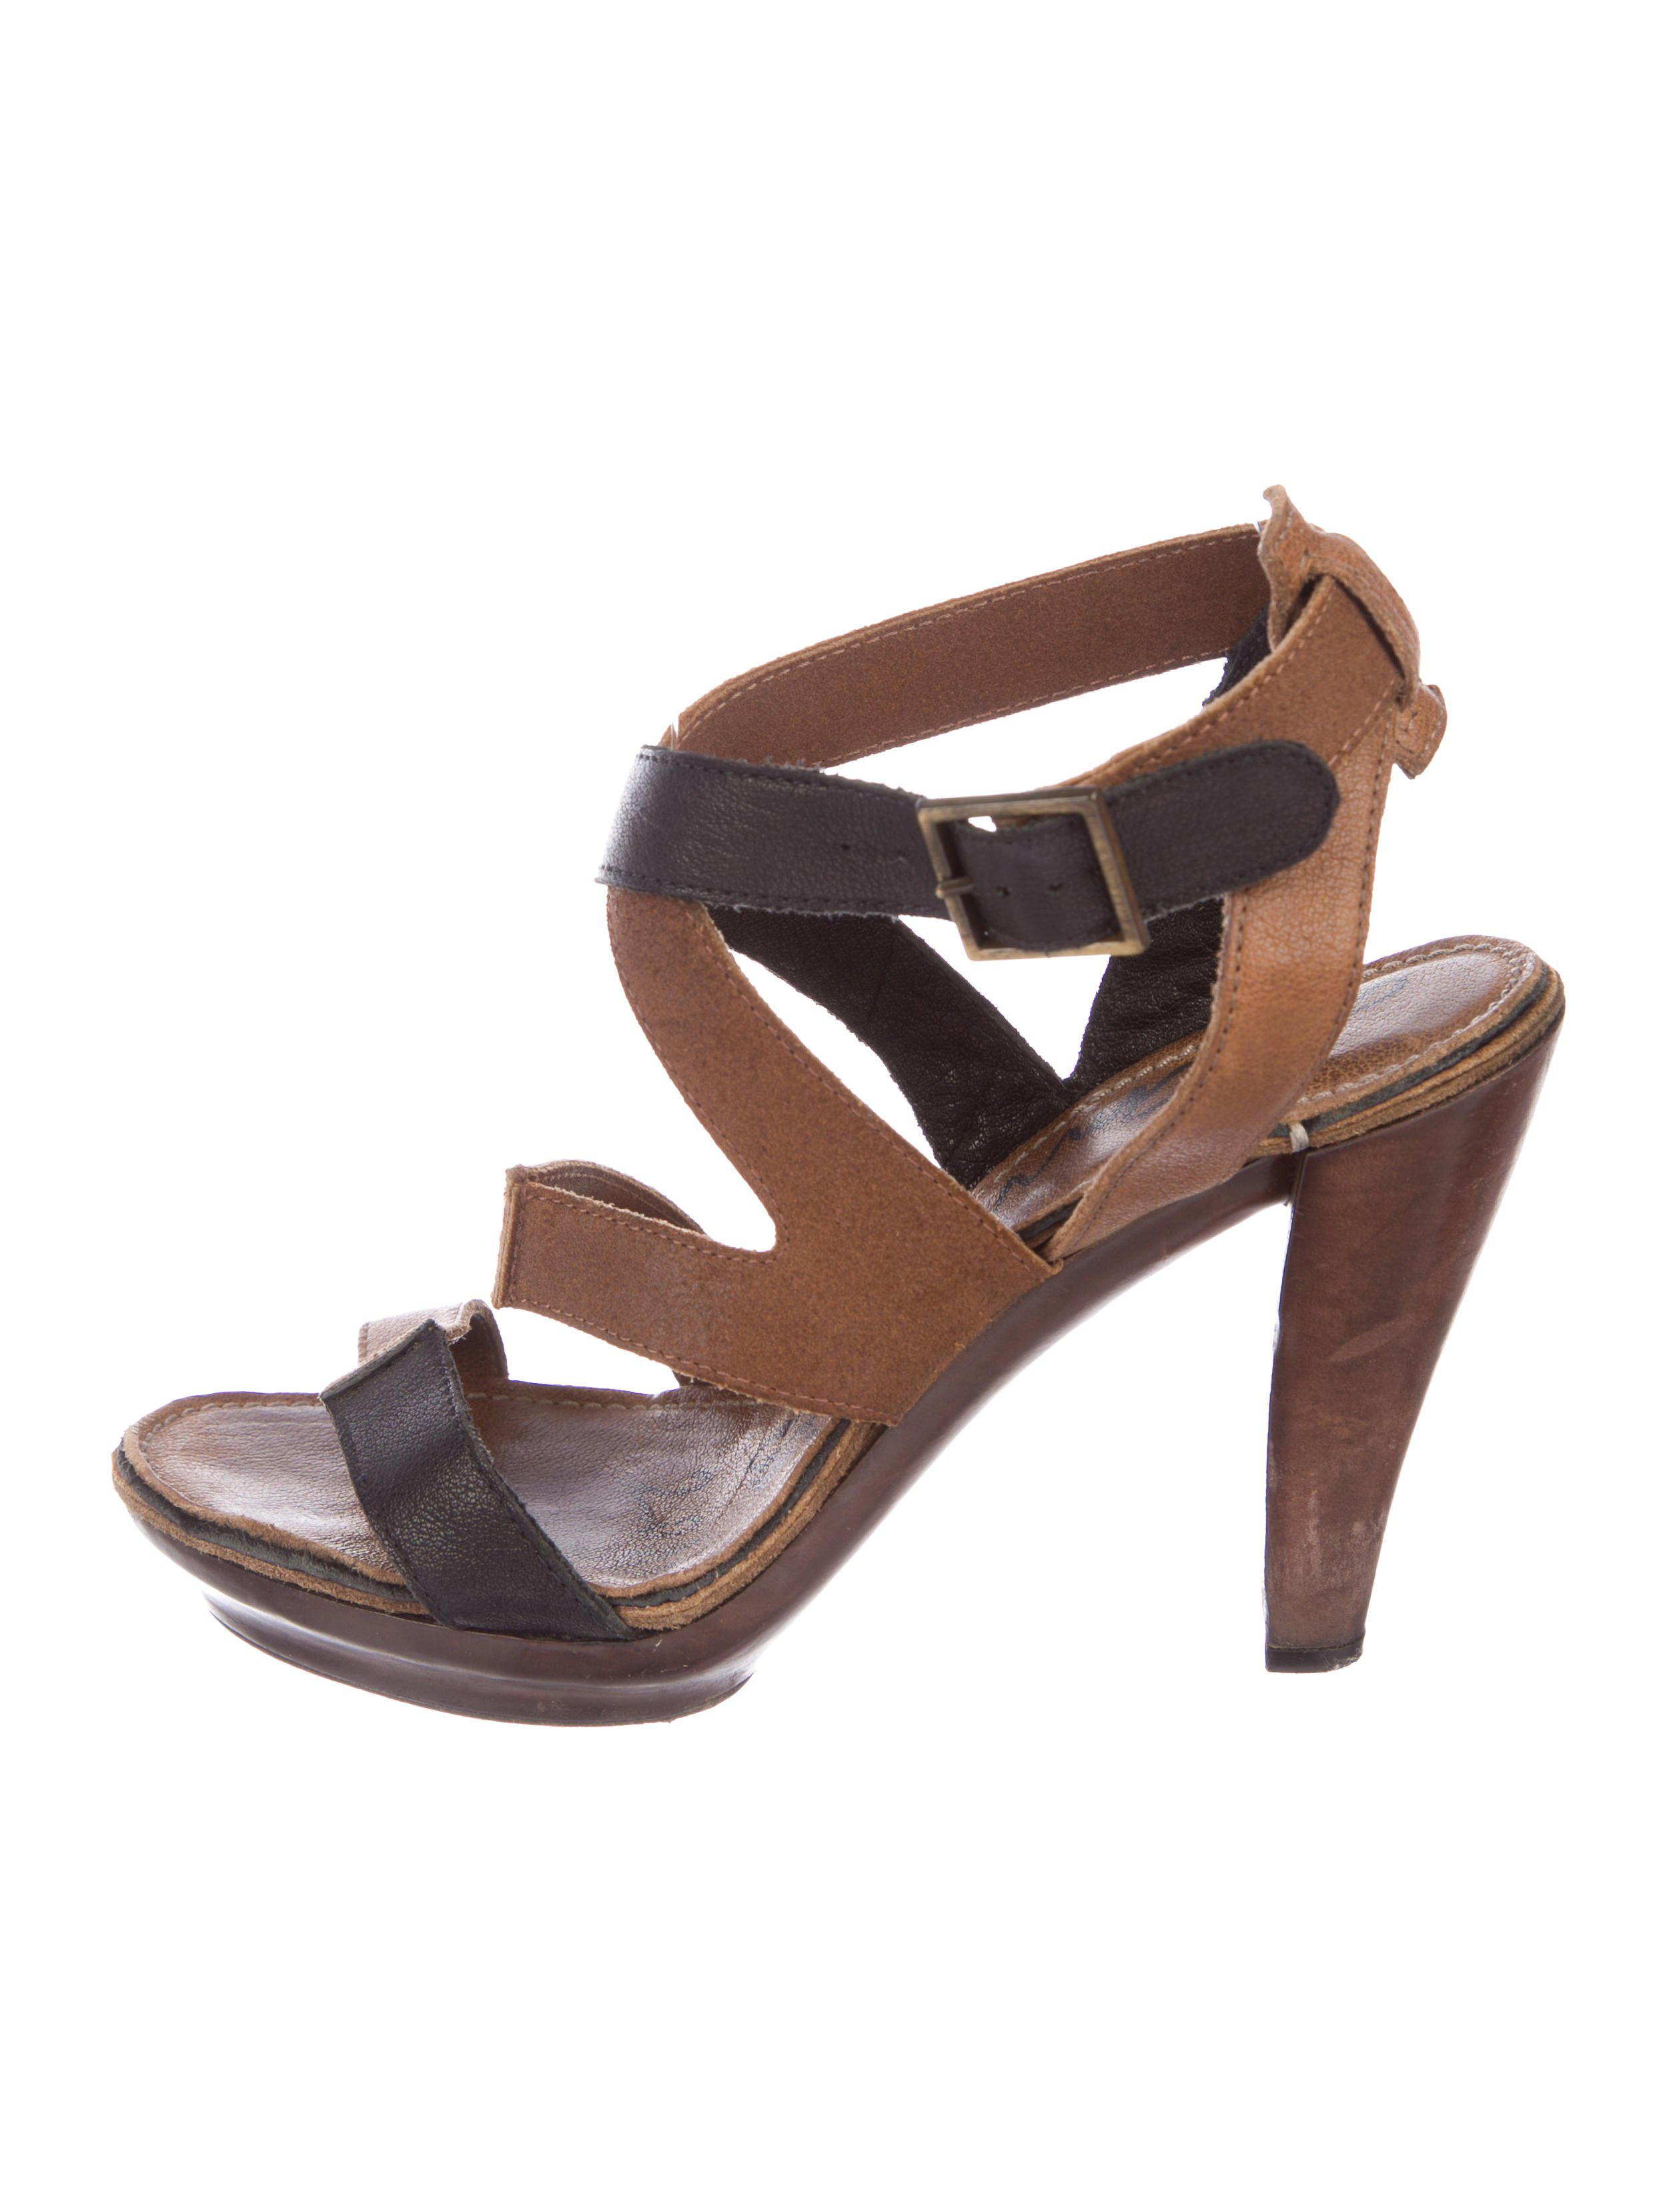 cheap sale limited edition cheap pay with visa Lanvin Leather Multi-strap Sandals footlocker finishline sale online 7IPDoZsh